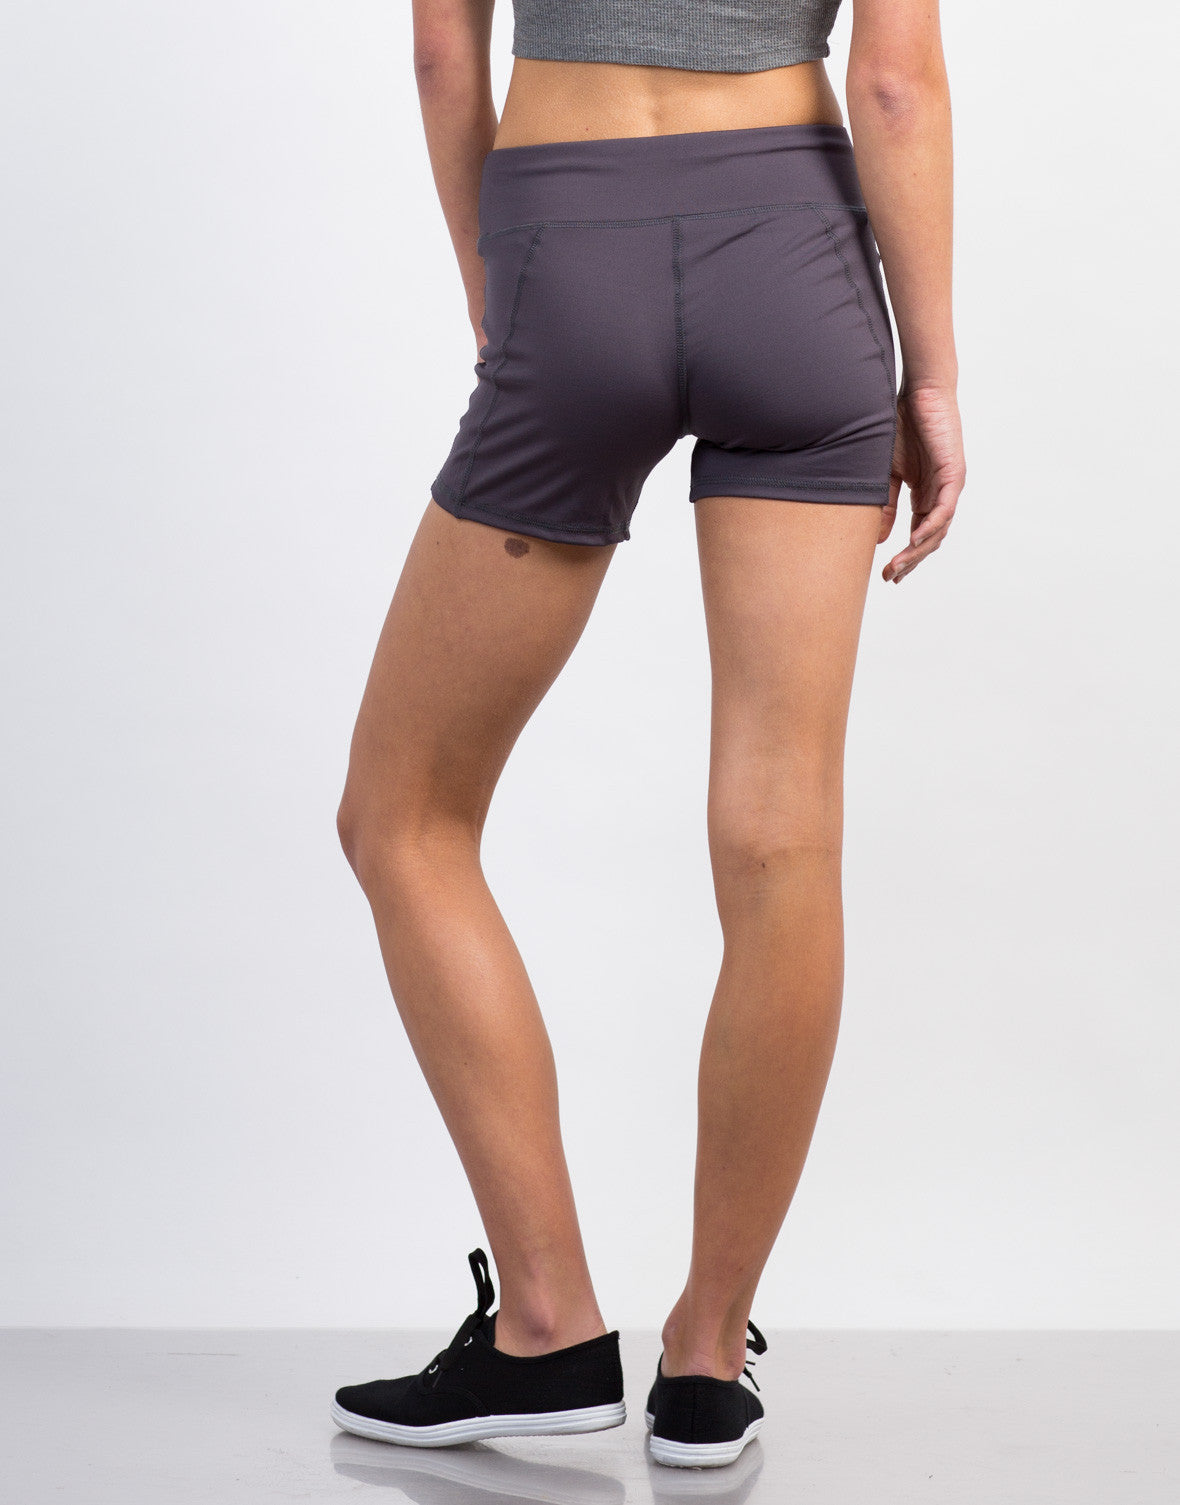 Back View of Spandex Activewear Shorts